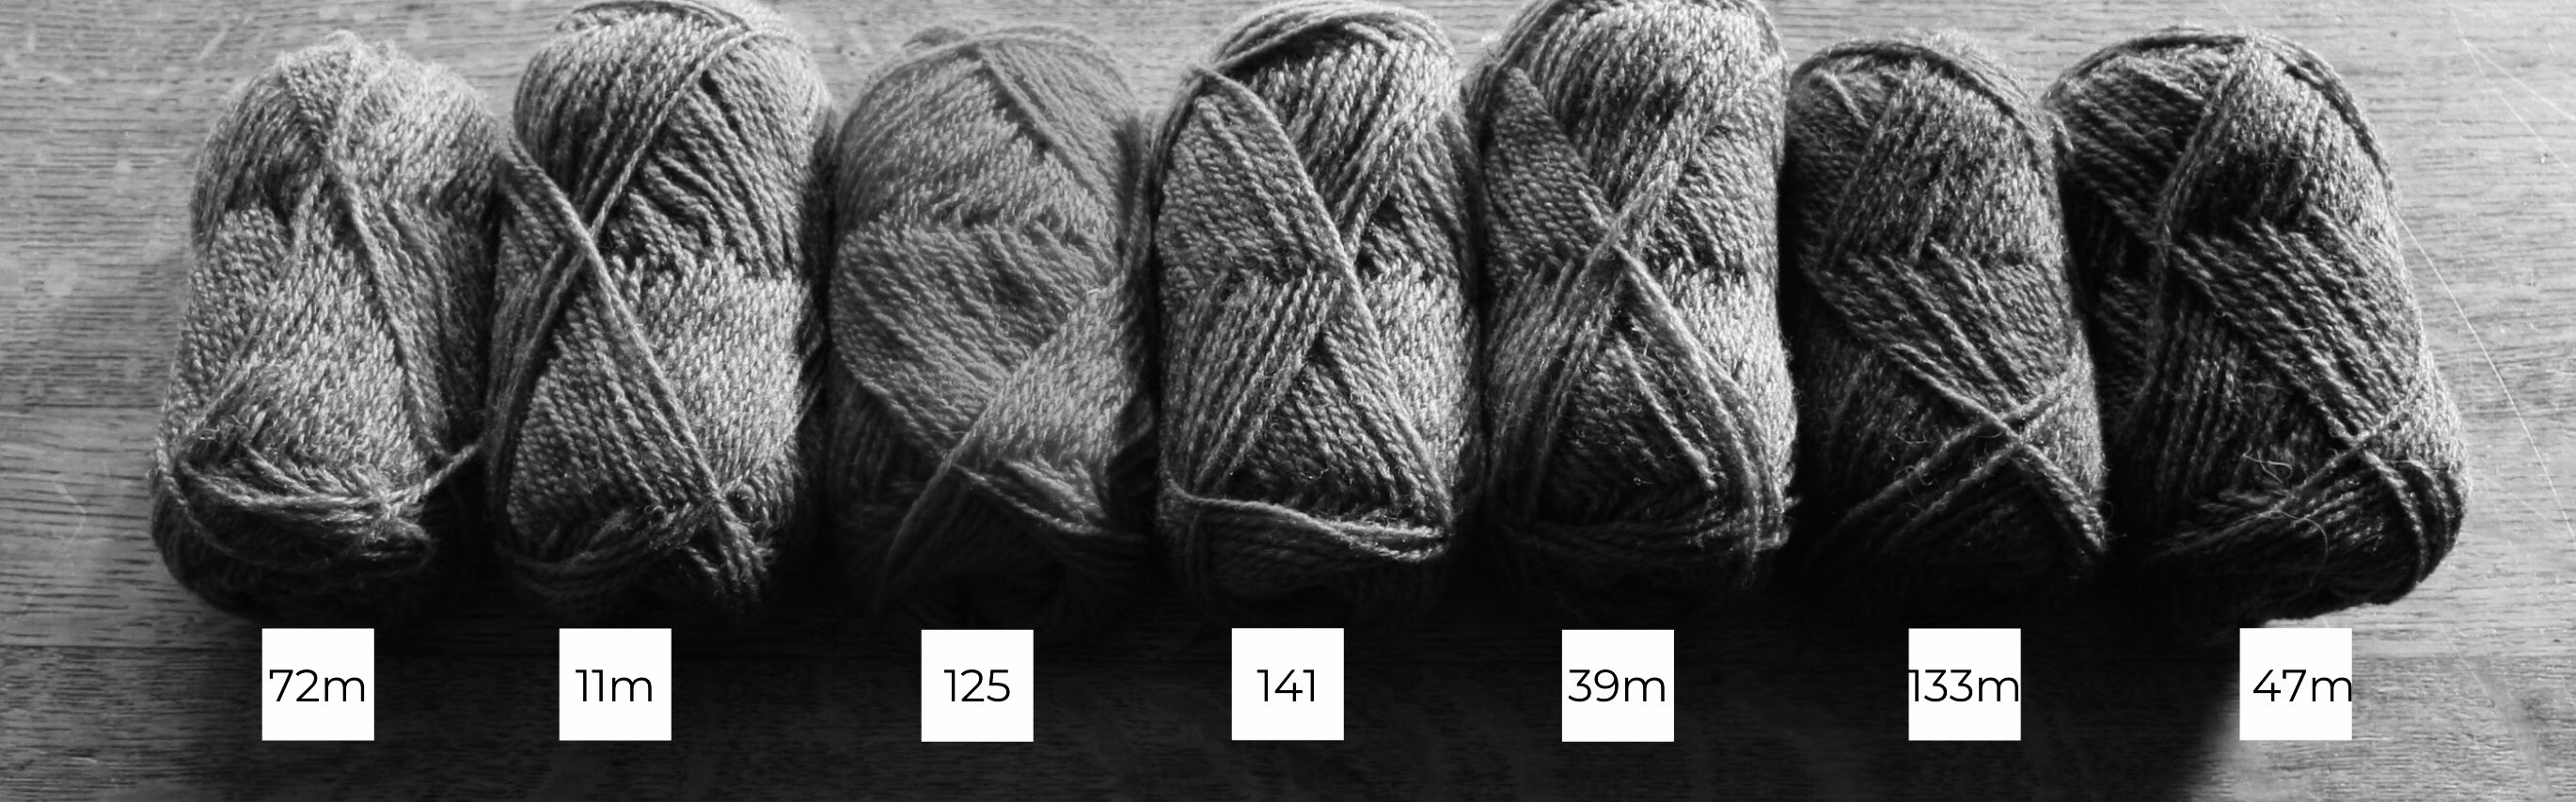 Seven balls of Shetland wool lined up in a row from light to dark in black and white